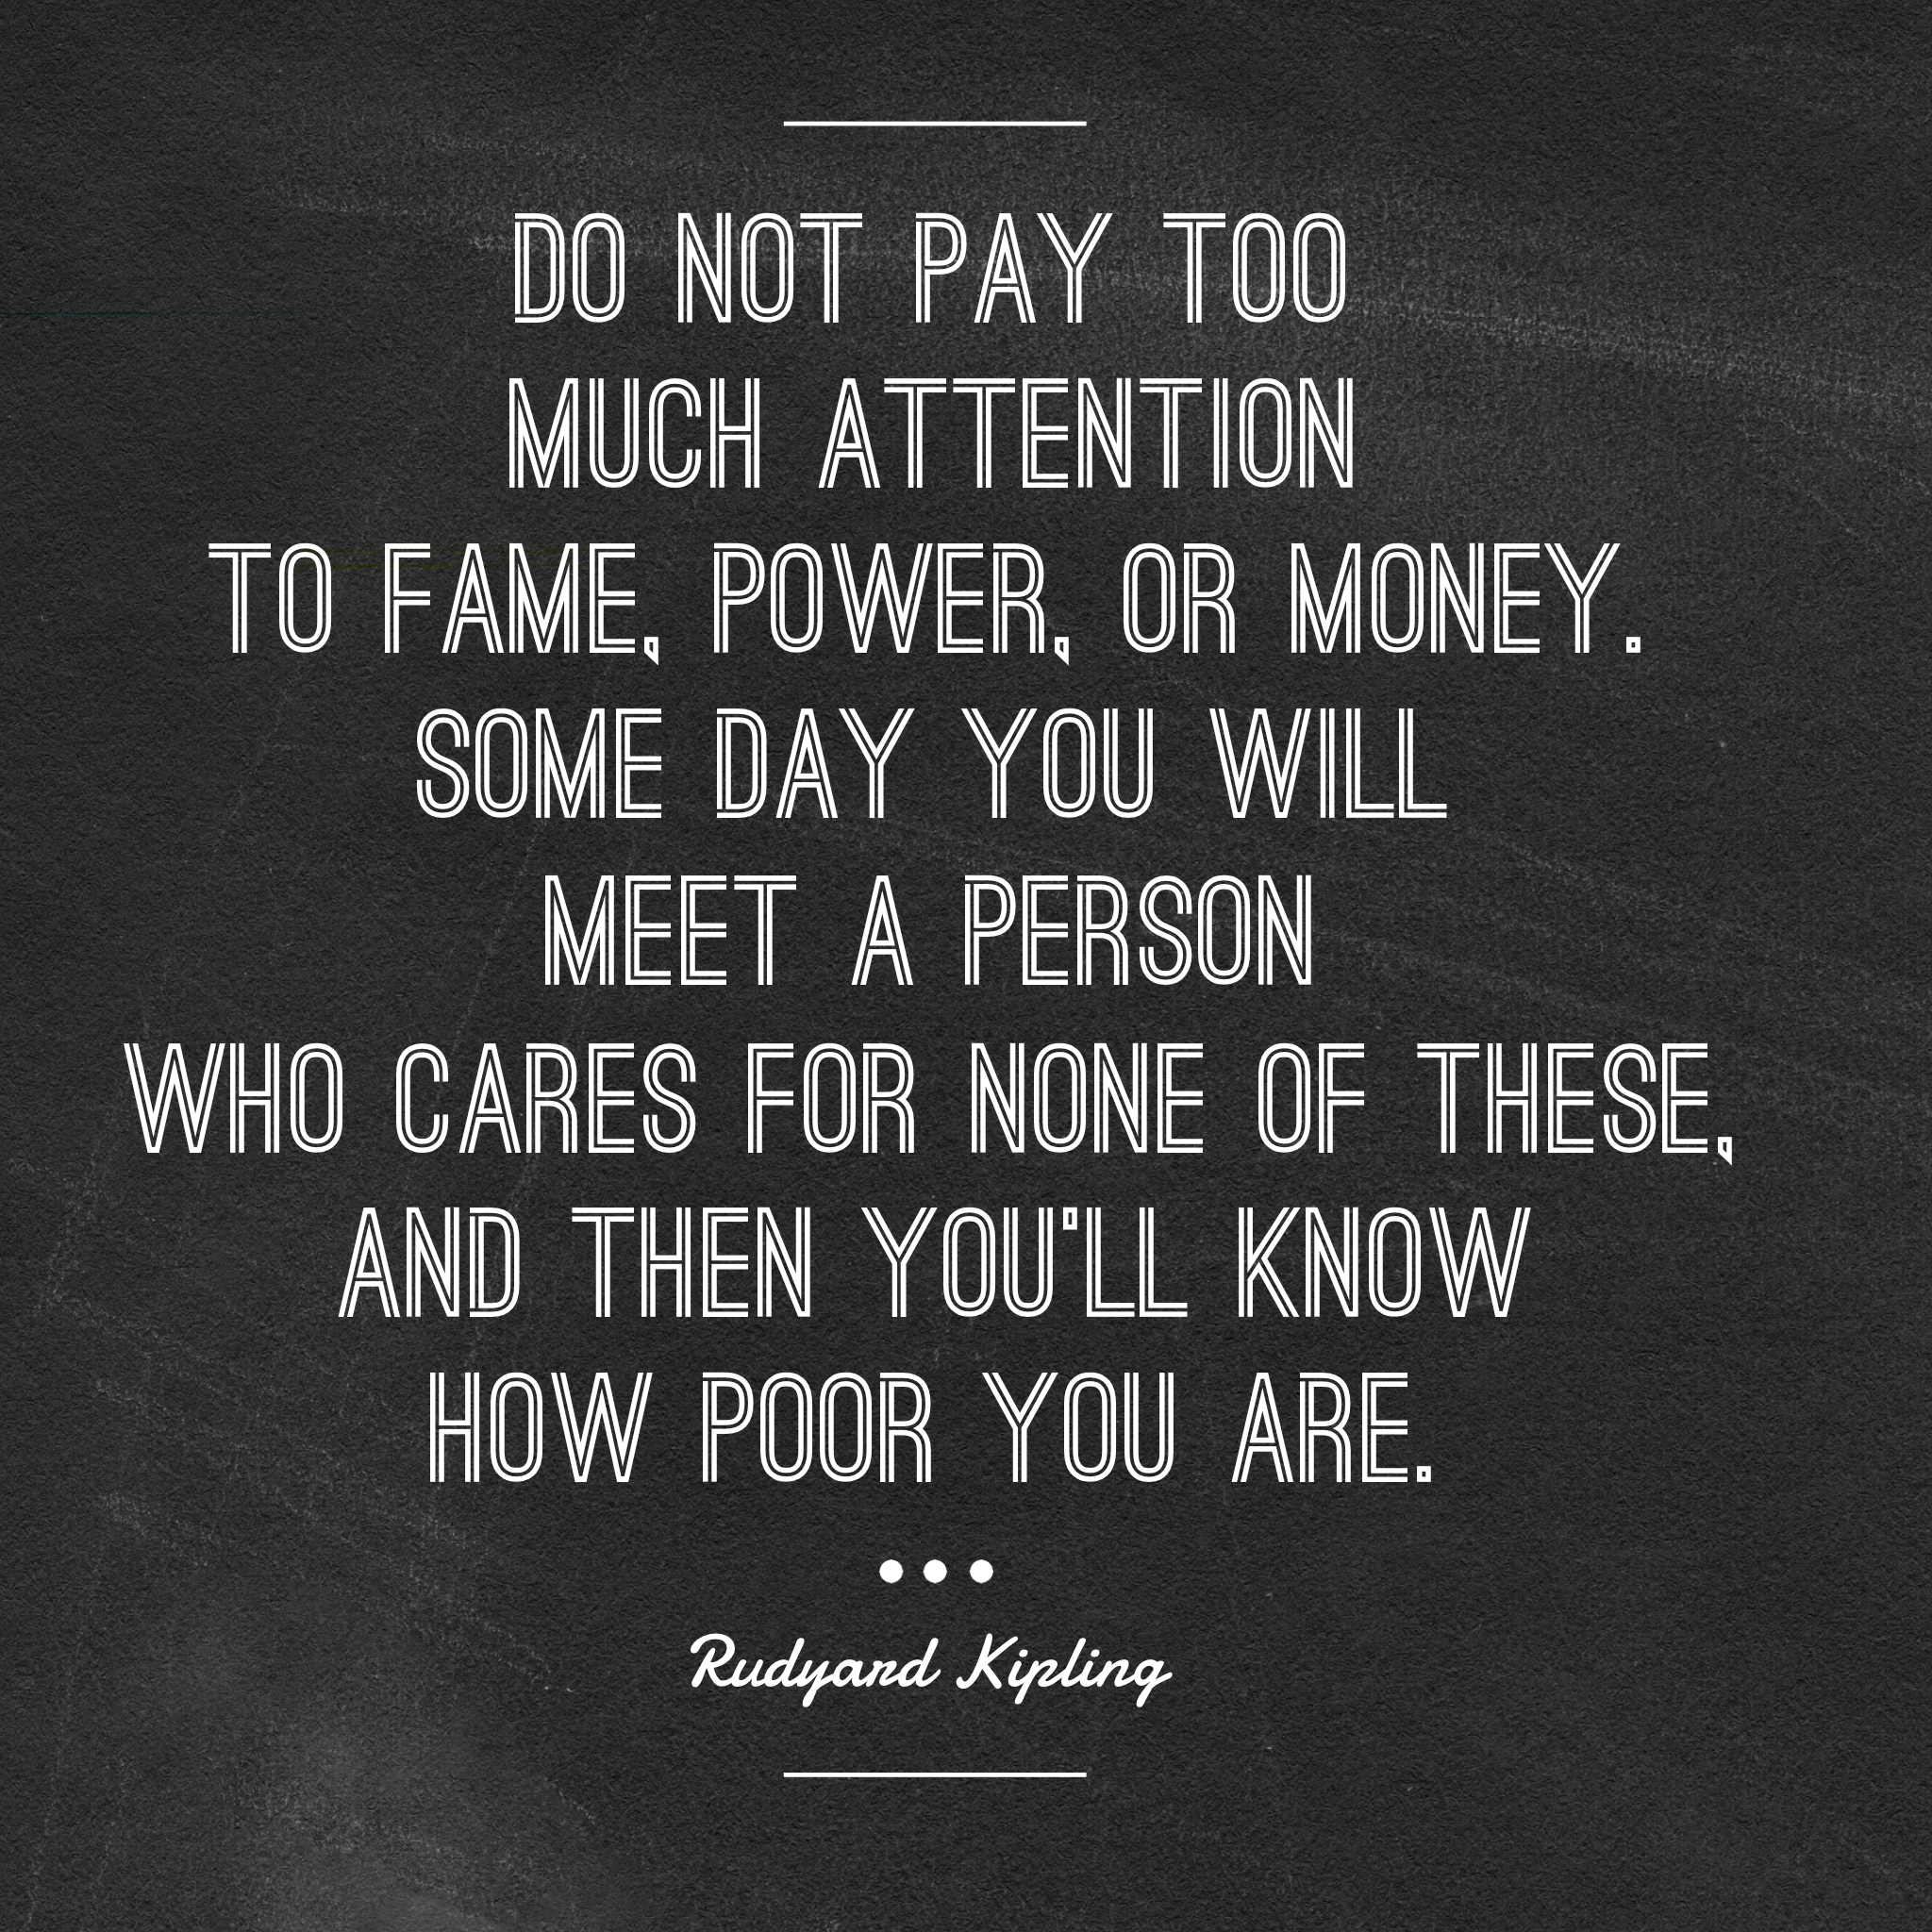 Do Not Pay Too Much Attention To Fame Power Or Money Some Day You Will Meet A Person Who Cares Be Yourself Quotes Rudyard Kipling Quotes If Rudyard Kipling